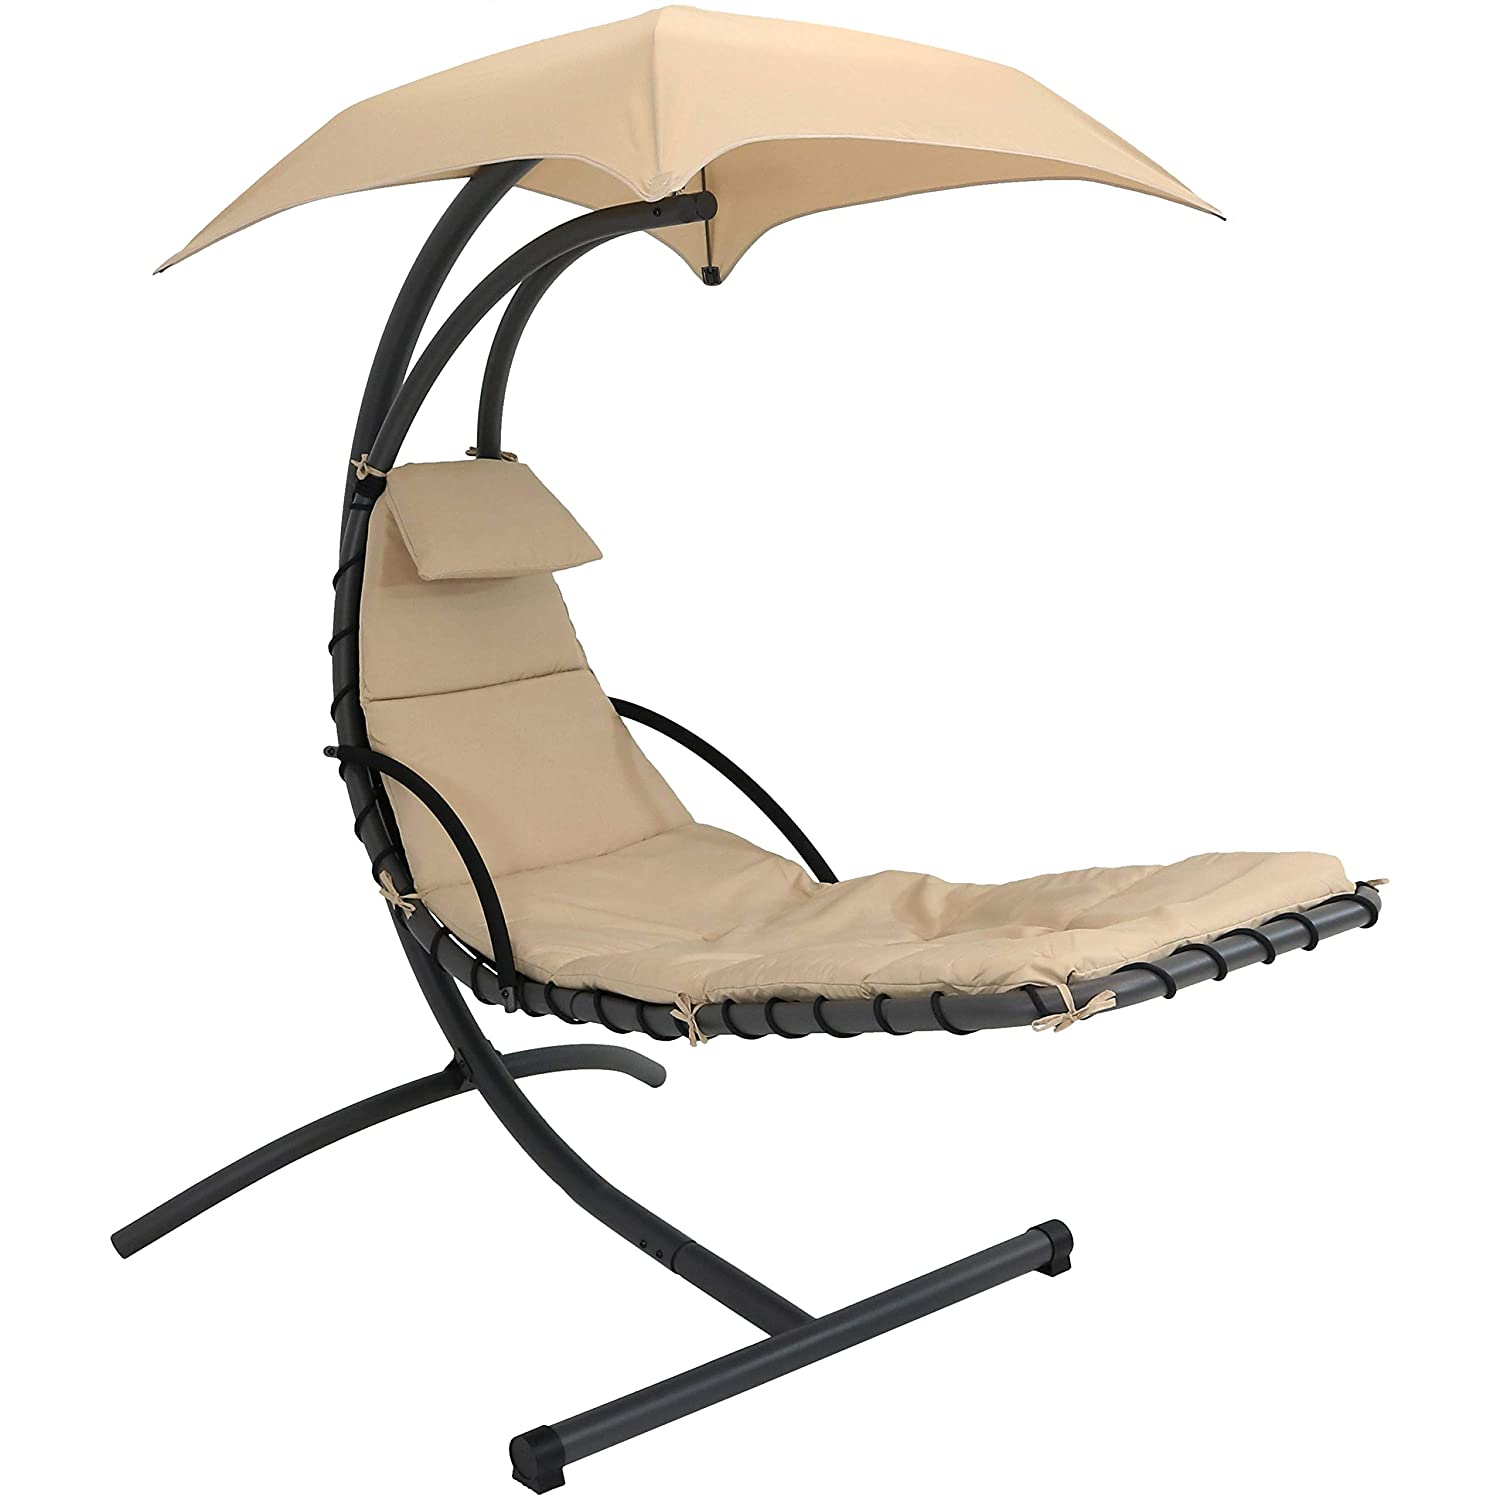 Amazon com sunnydaze floating chaise lounger outdoor hanging hammock patio swing chair with canopy and arc stand beige garden outdoor